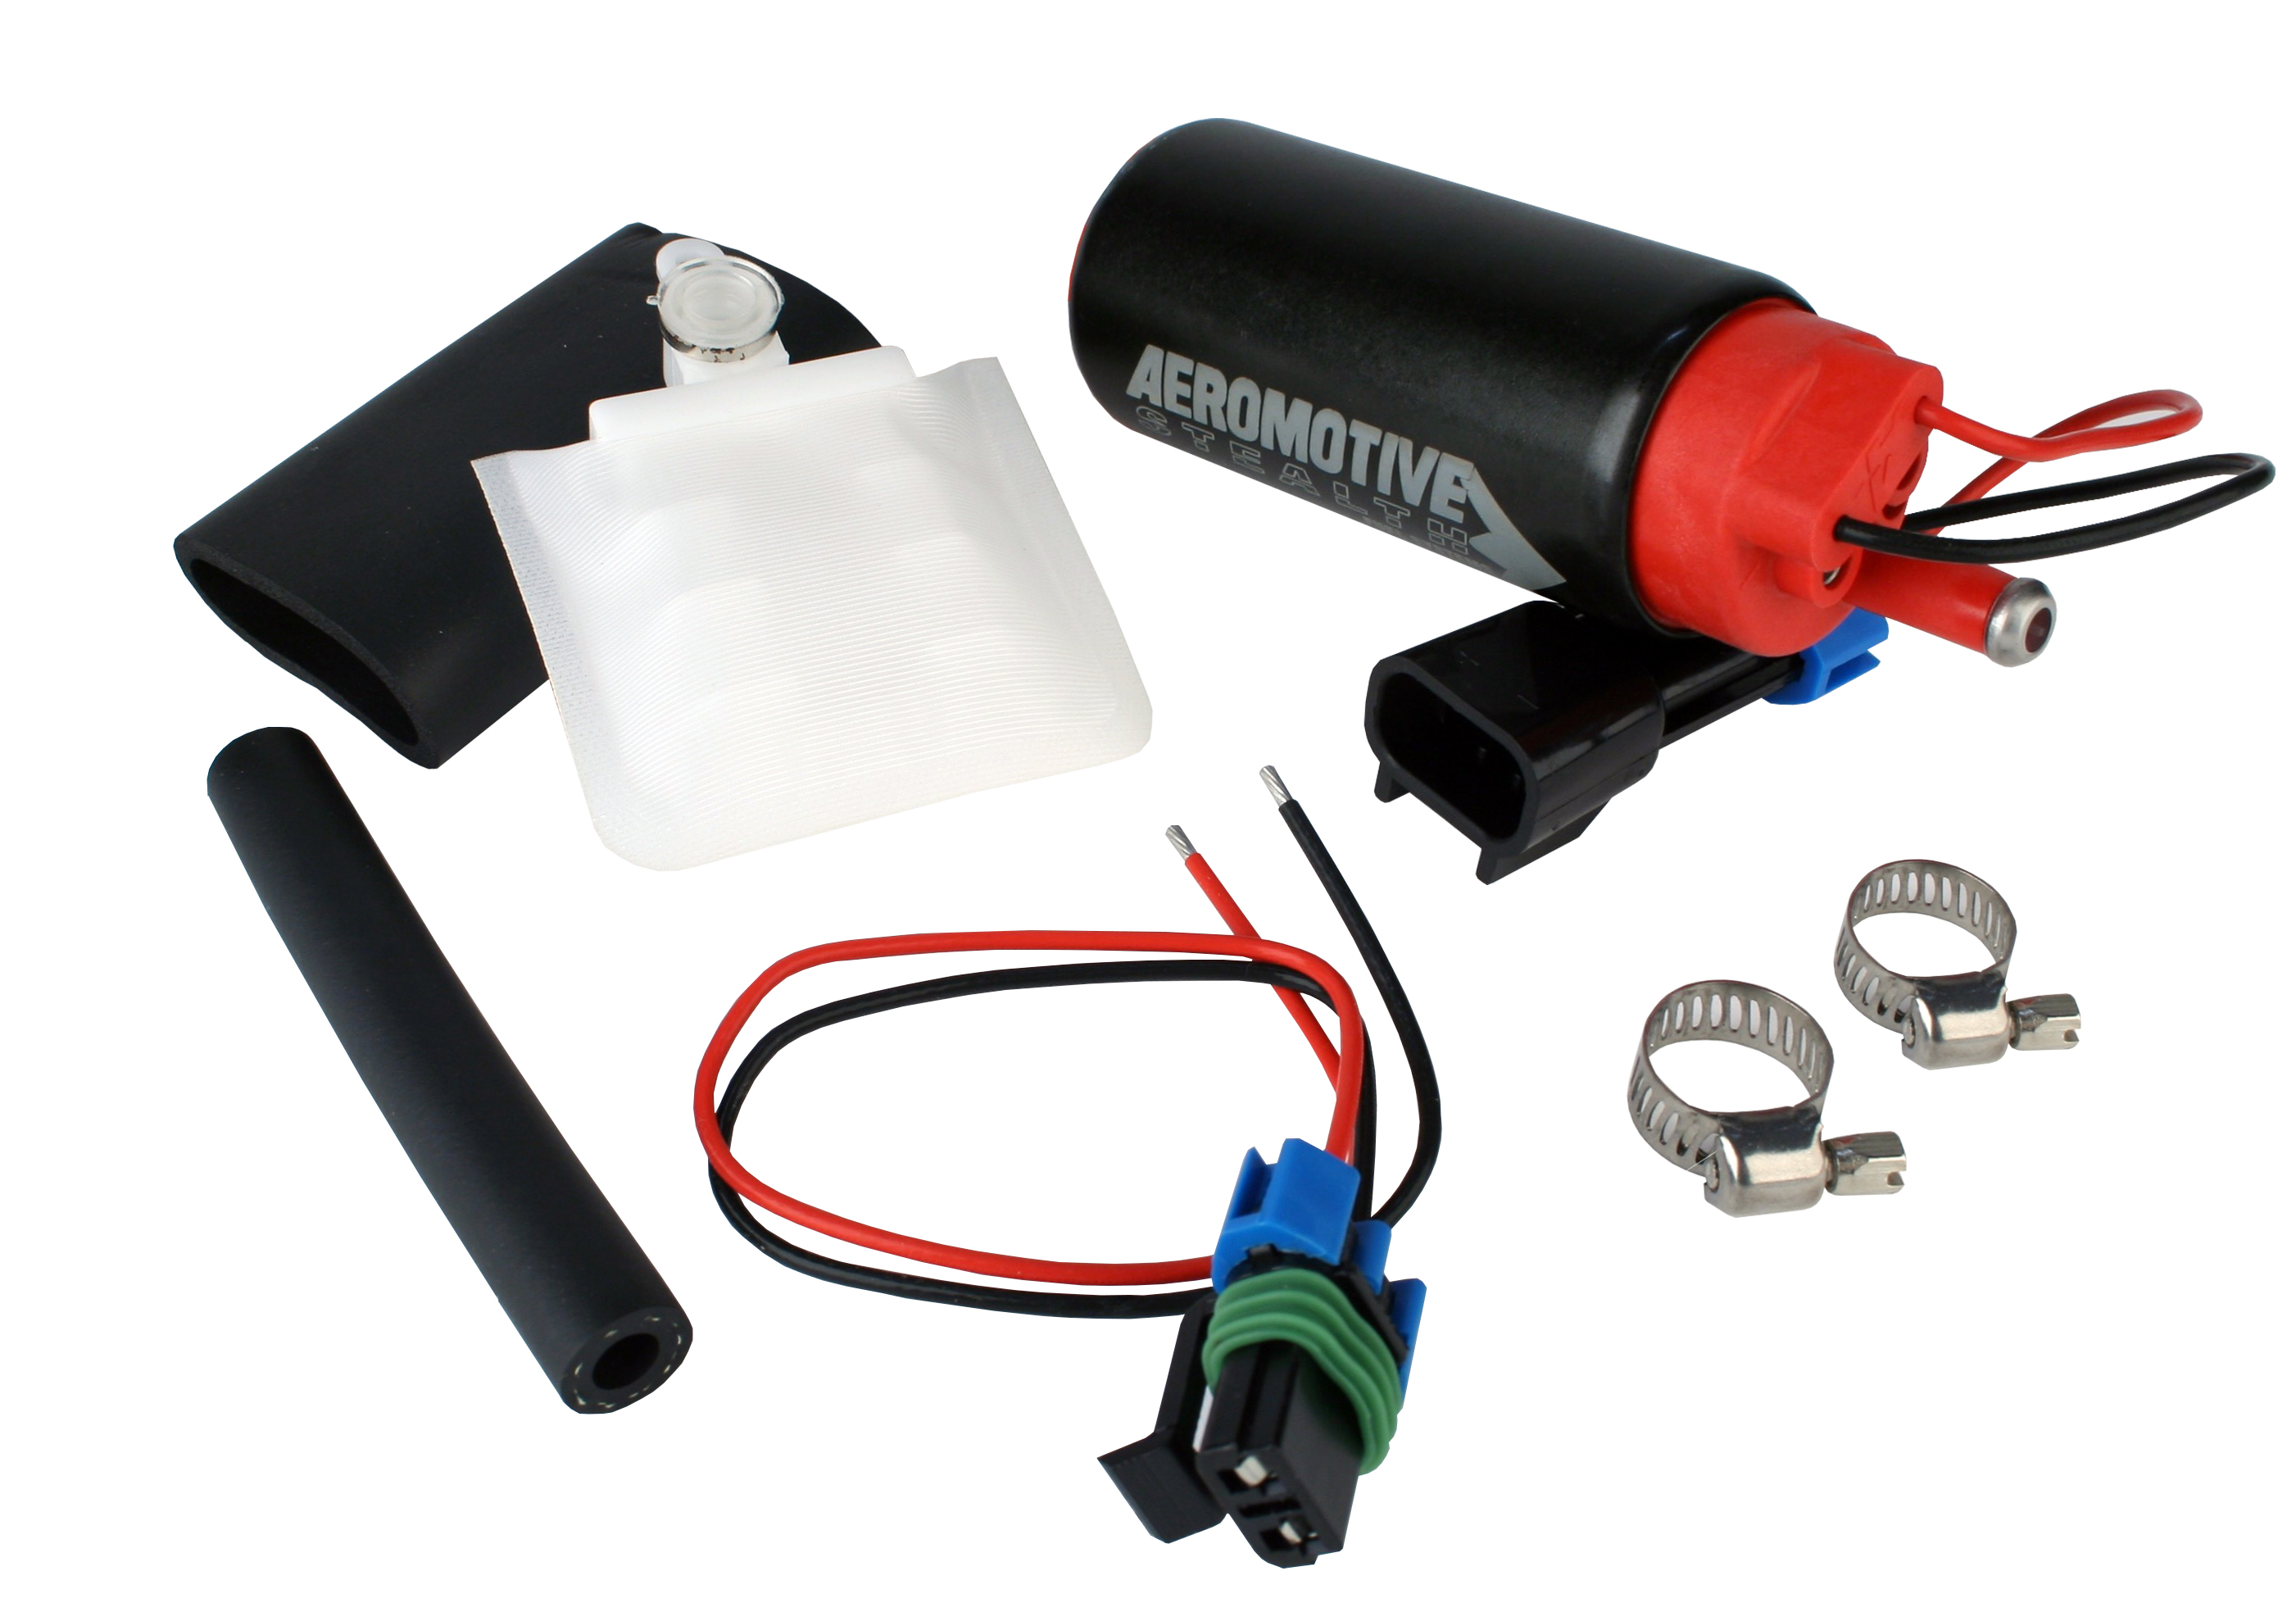 Extreme Psi Your 1 Source For In Stock Performance Parts Infiniti G37 Fuel Pump Aeromotive 340 Lph E85 Stealth Offset Inlet Opposite W Outlet 31036